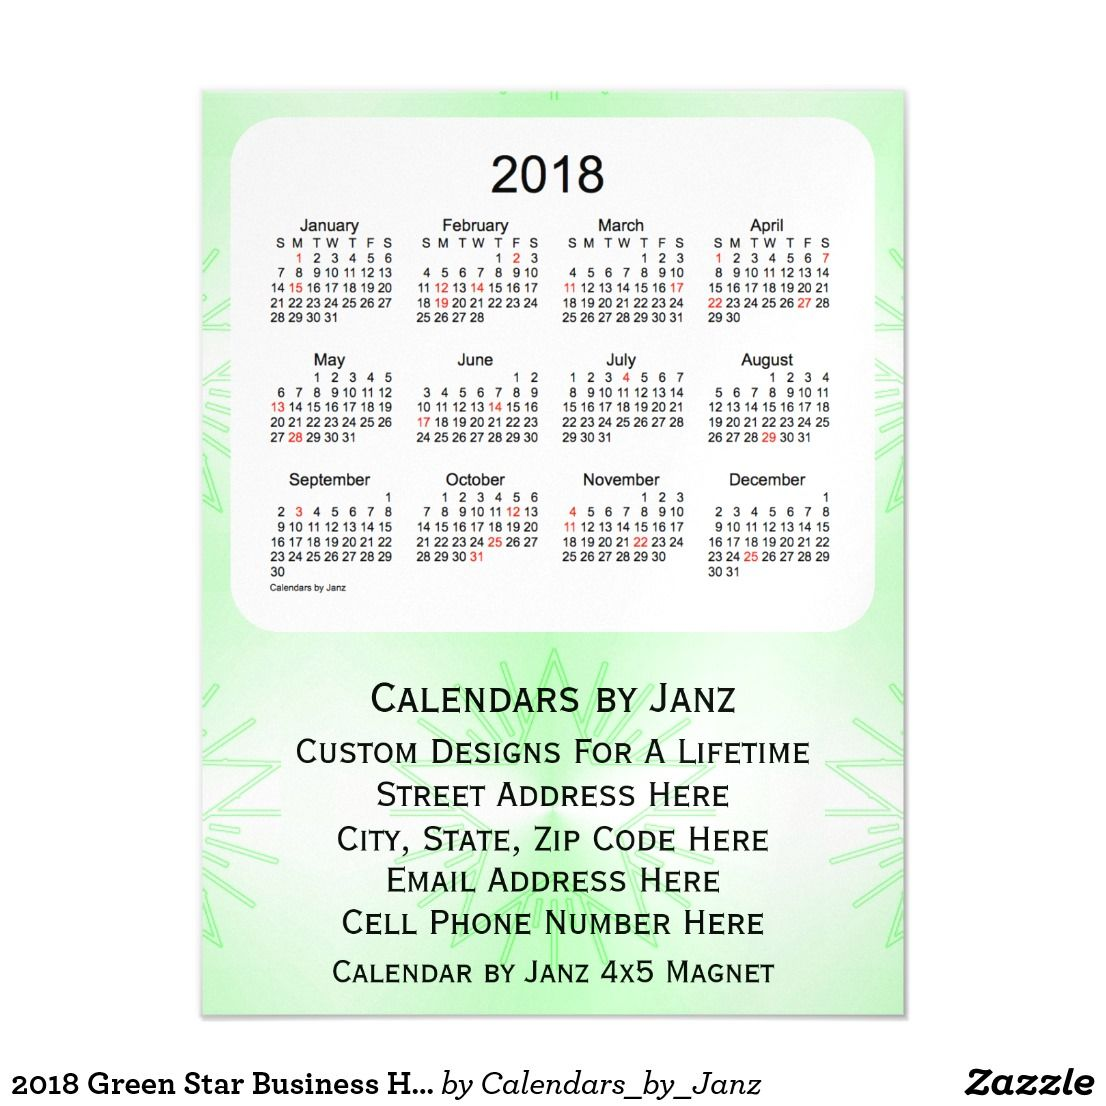 2018 Green Star Business Holiday Calendar by Janz Magnetic Card ...